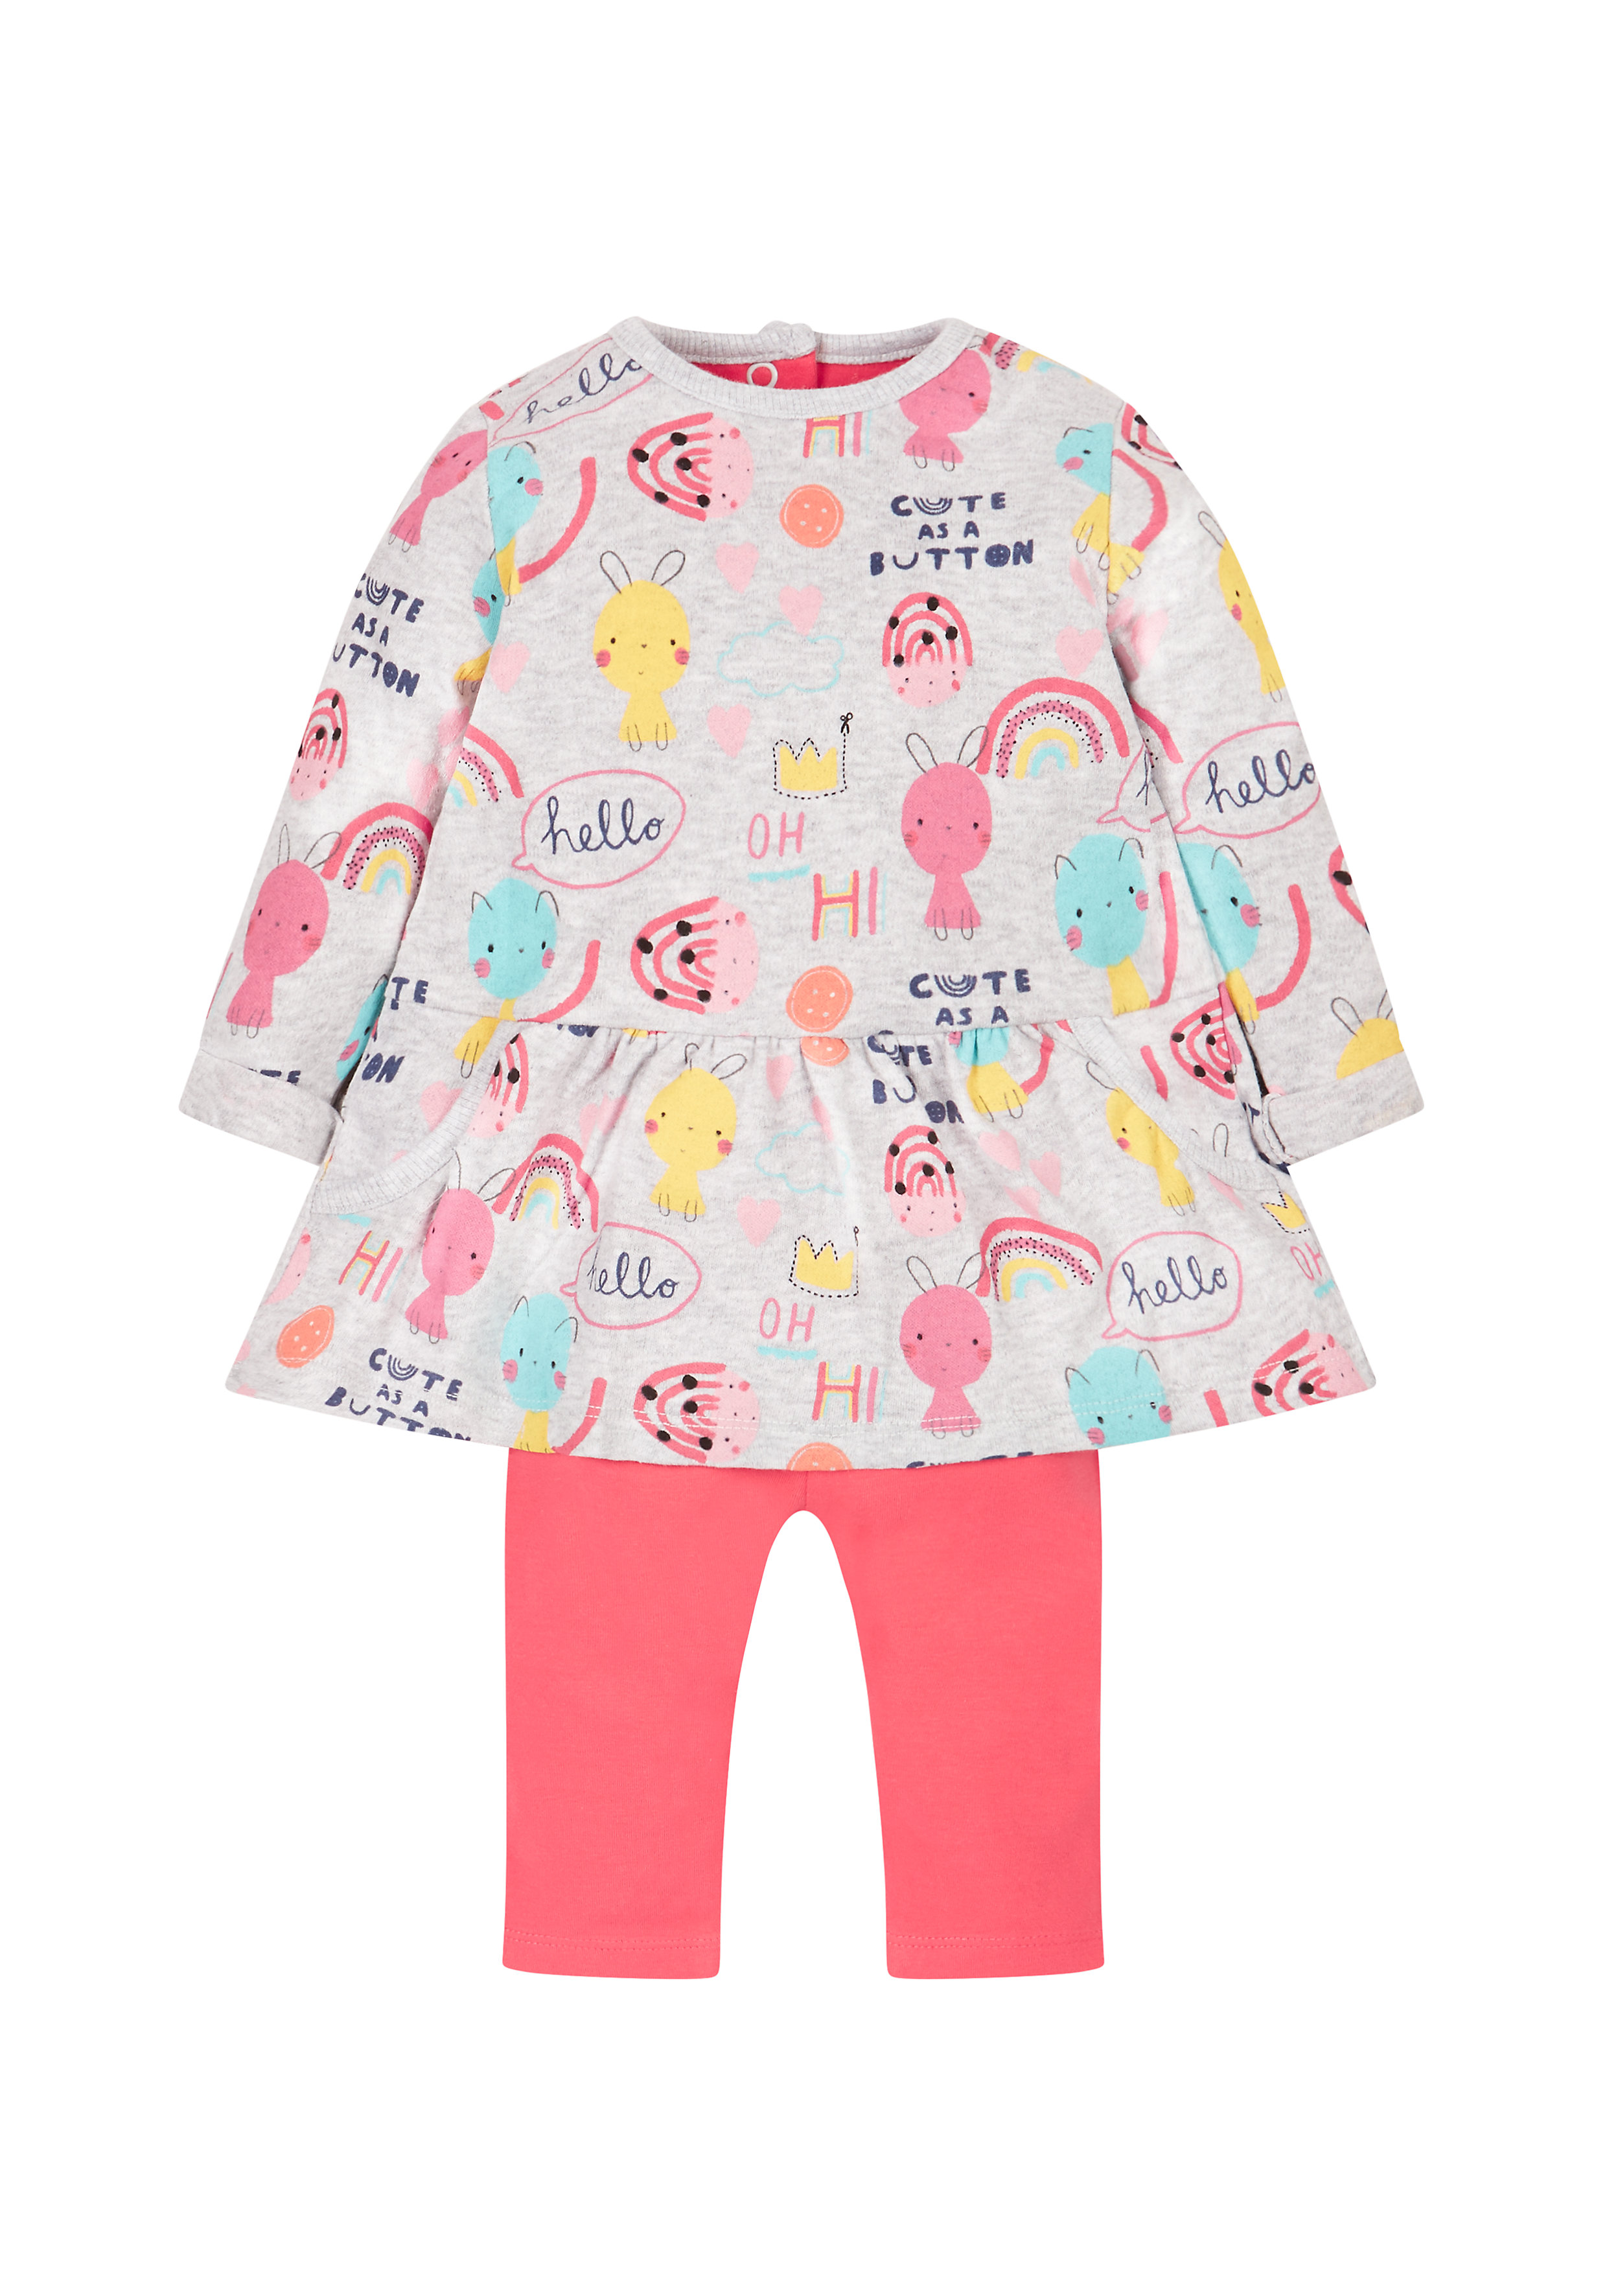 Mothercare | Cute As A Button Dress And Leggings Set